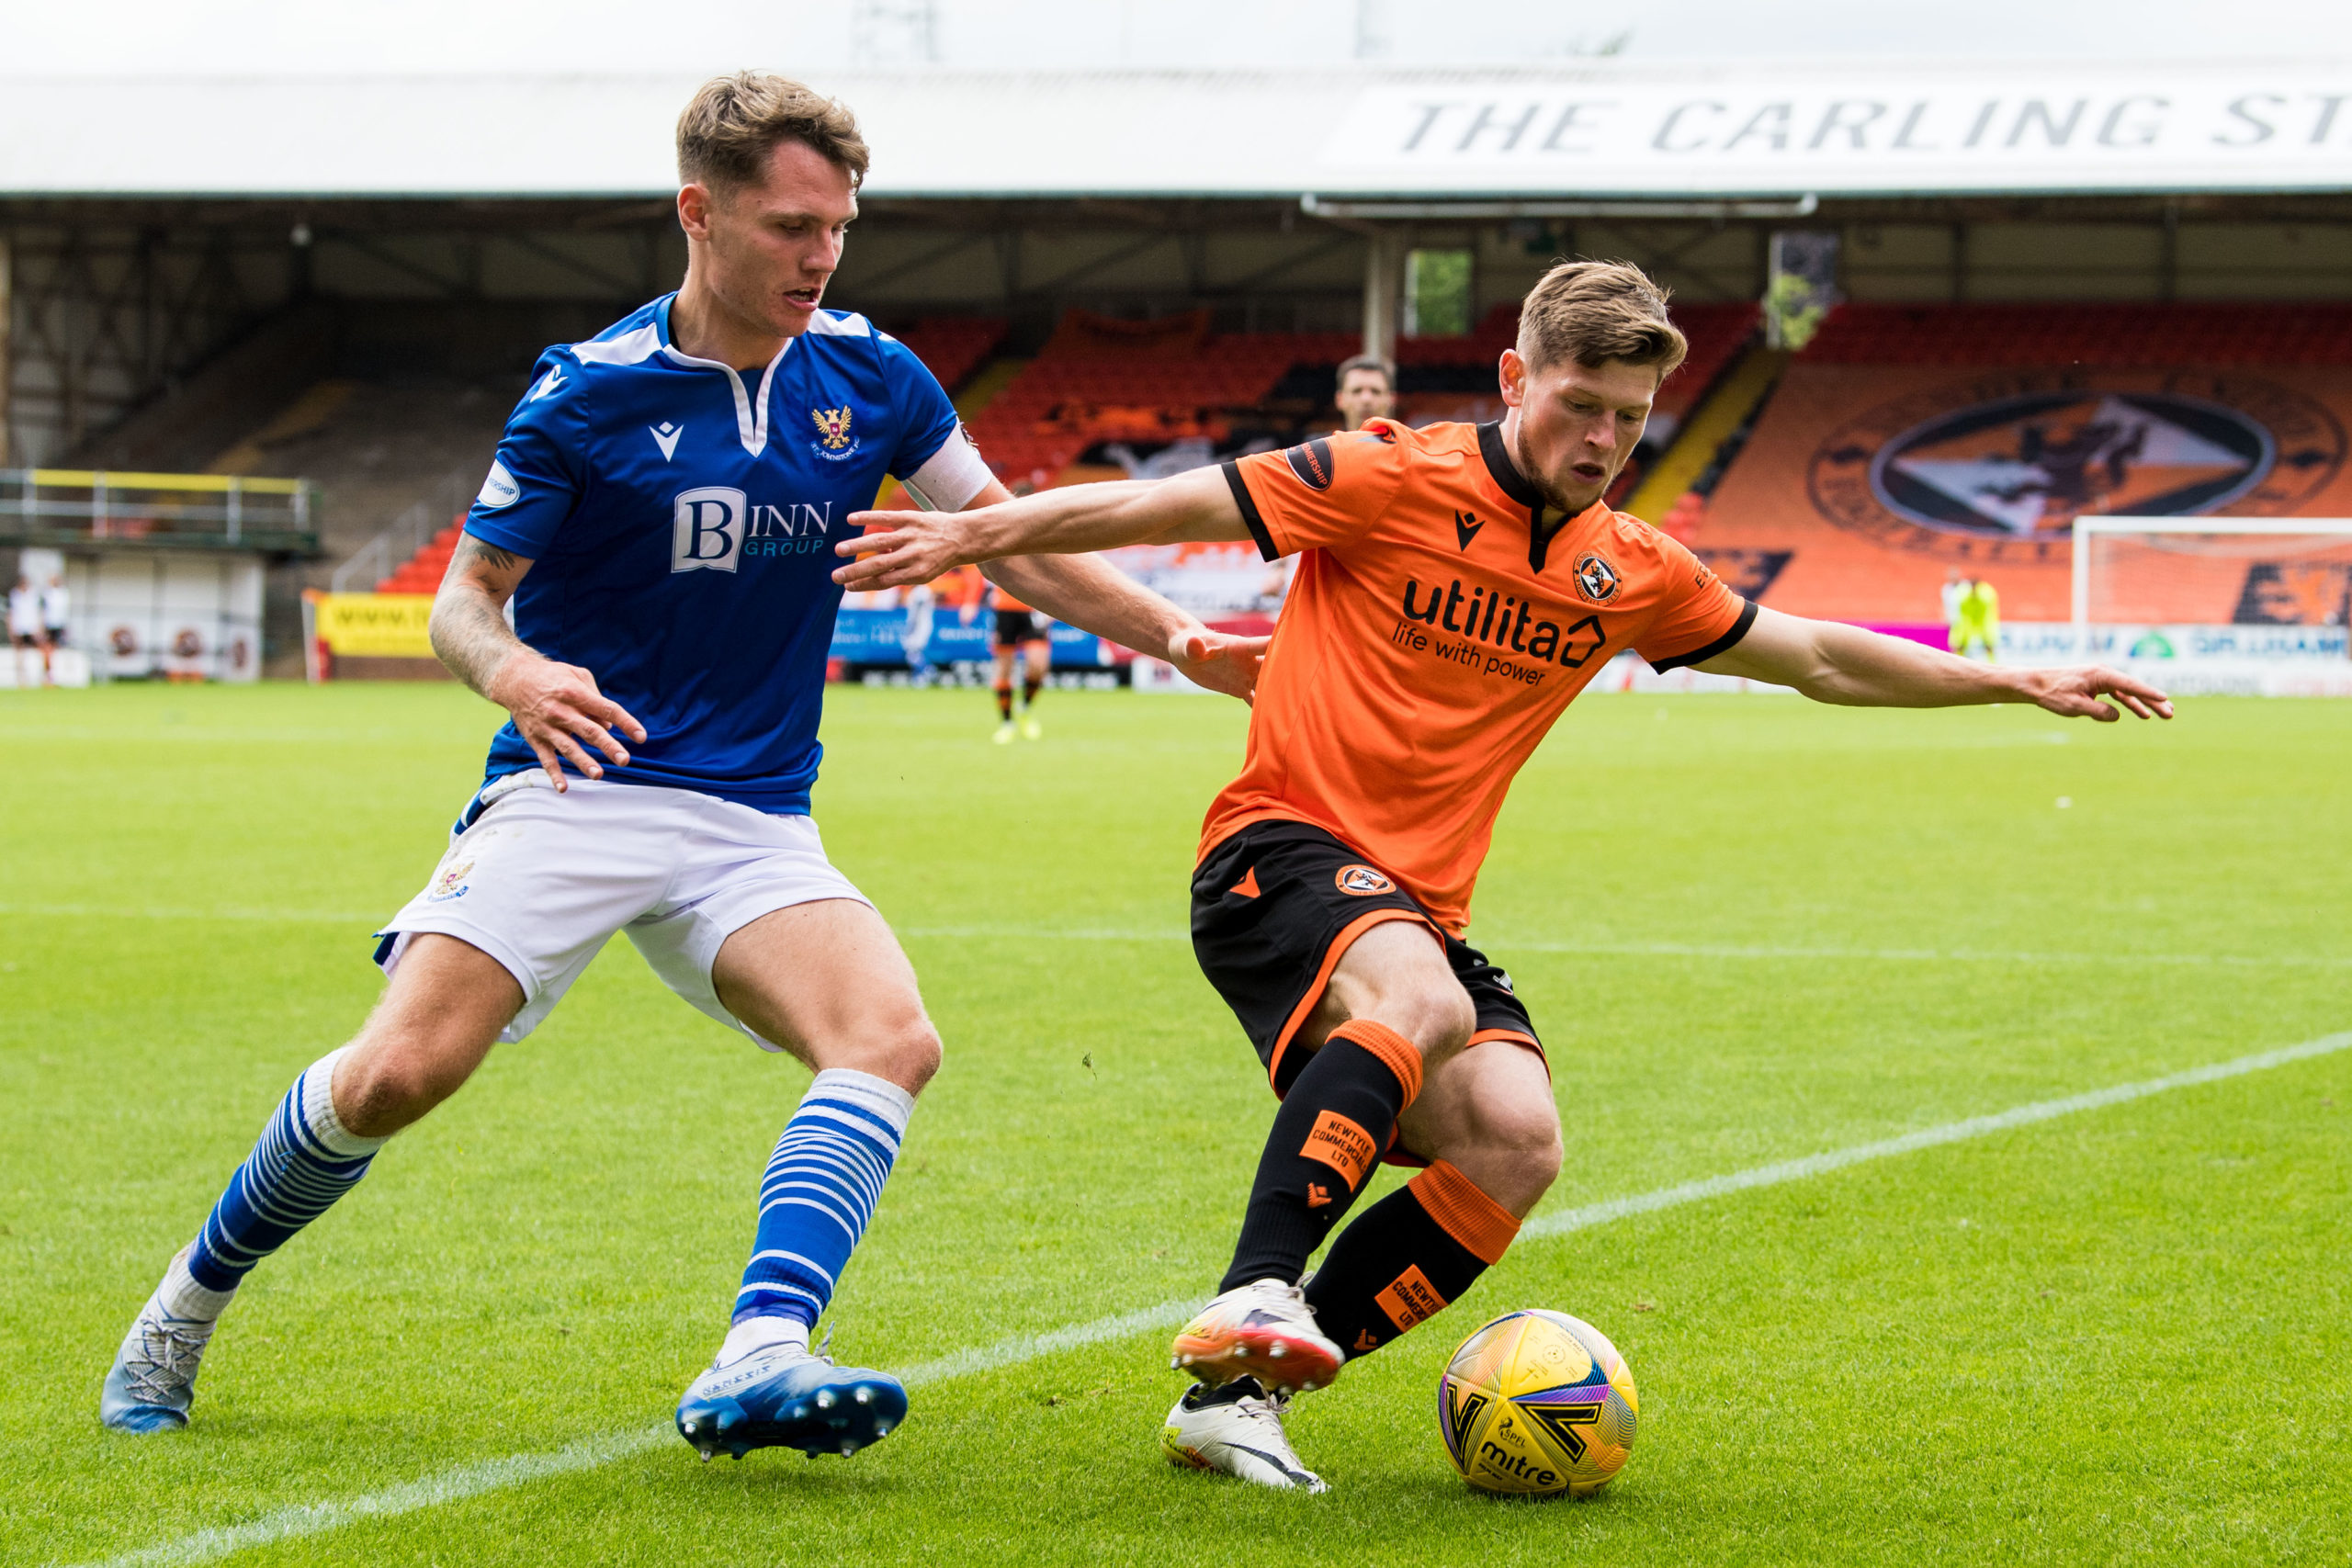 Cammy Smith up against St Johnstone's Jason Kerr on the opening day of the season.